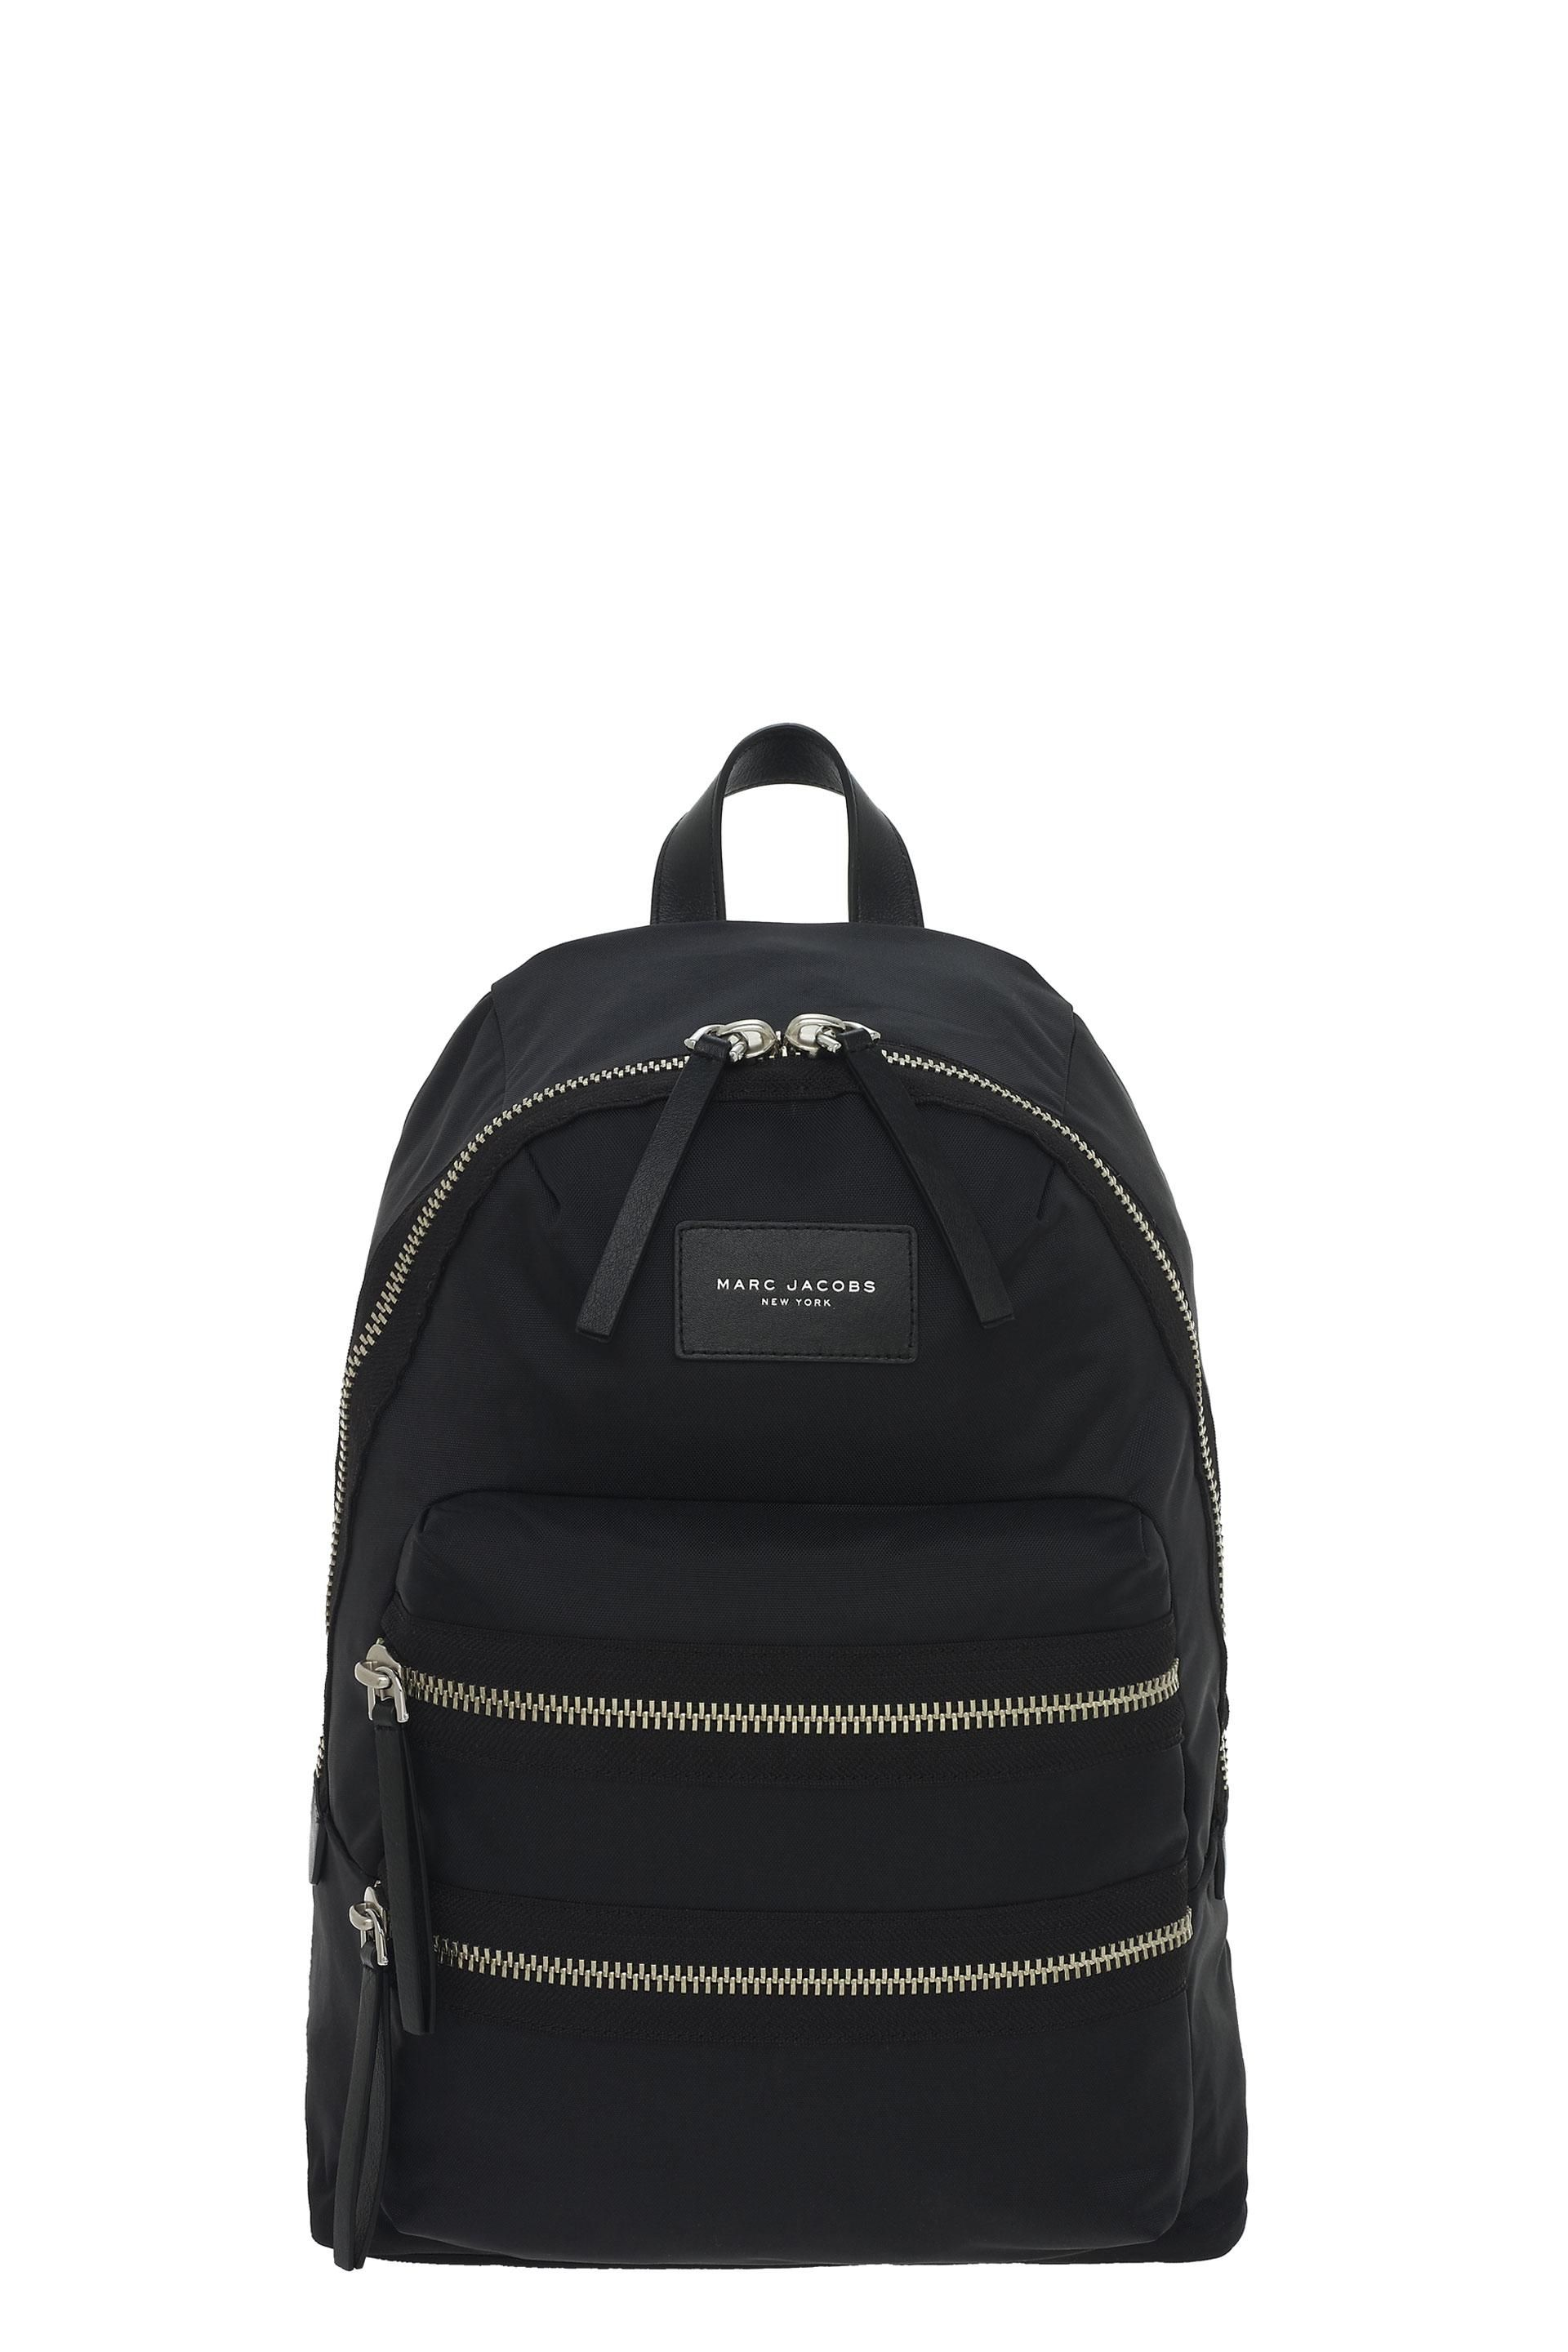 Under 50 Dollars badge detail backpack - Black Marc Jacobs Outlet Best Place Free Shipping Sneakernews XWf5Sz6h